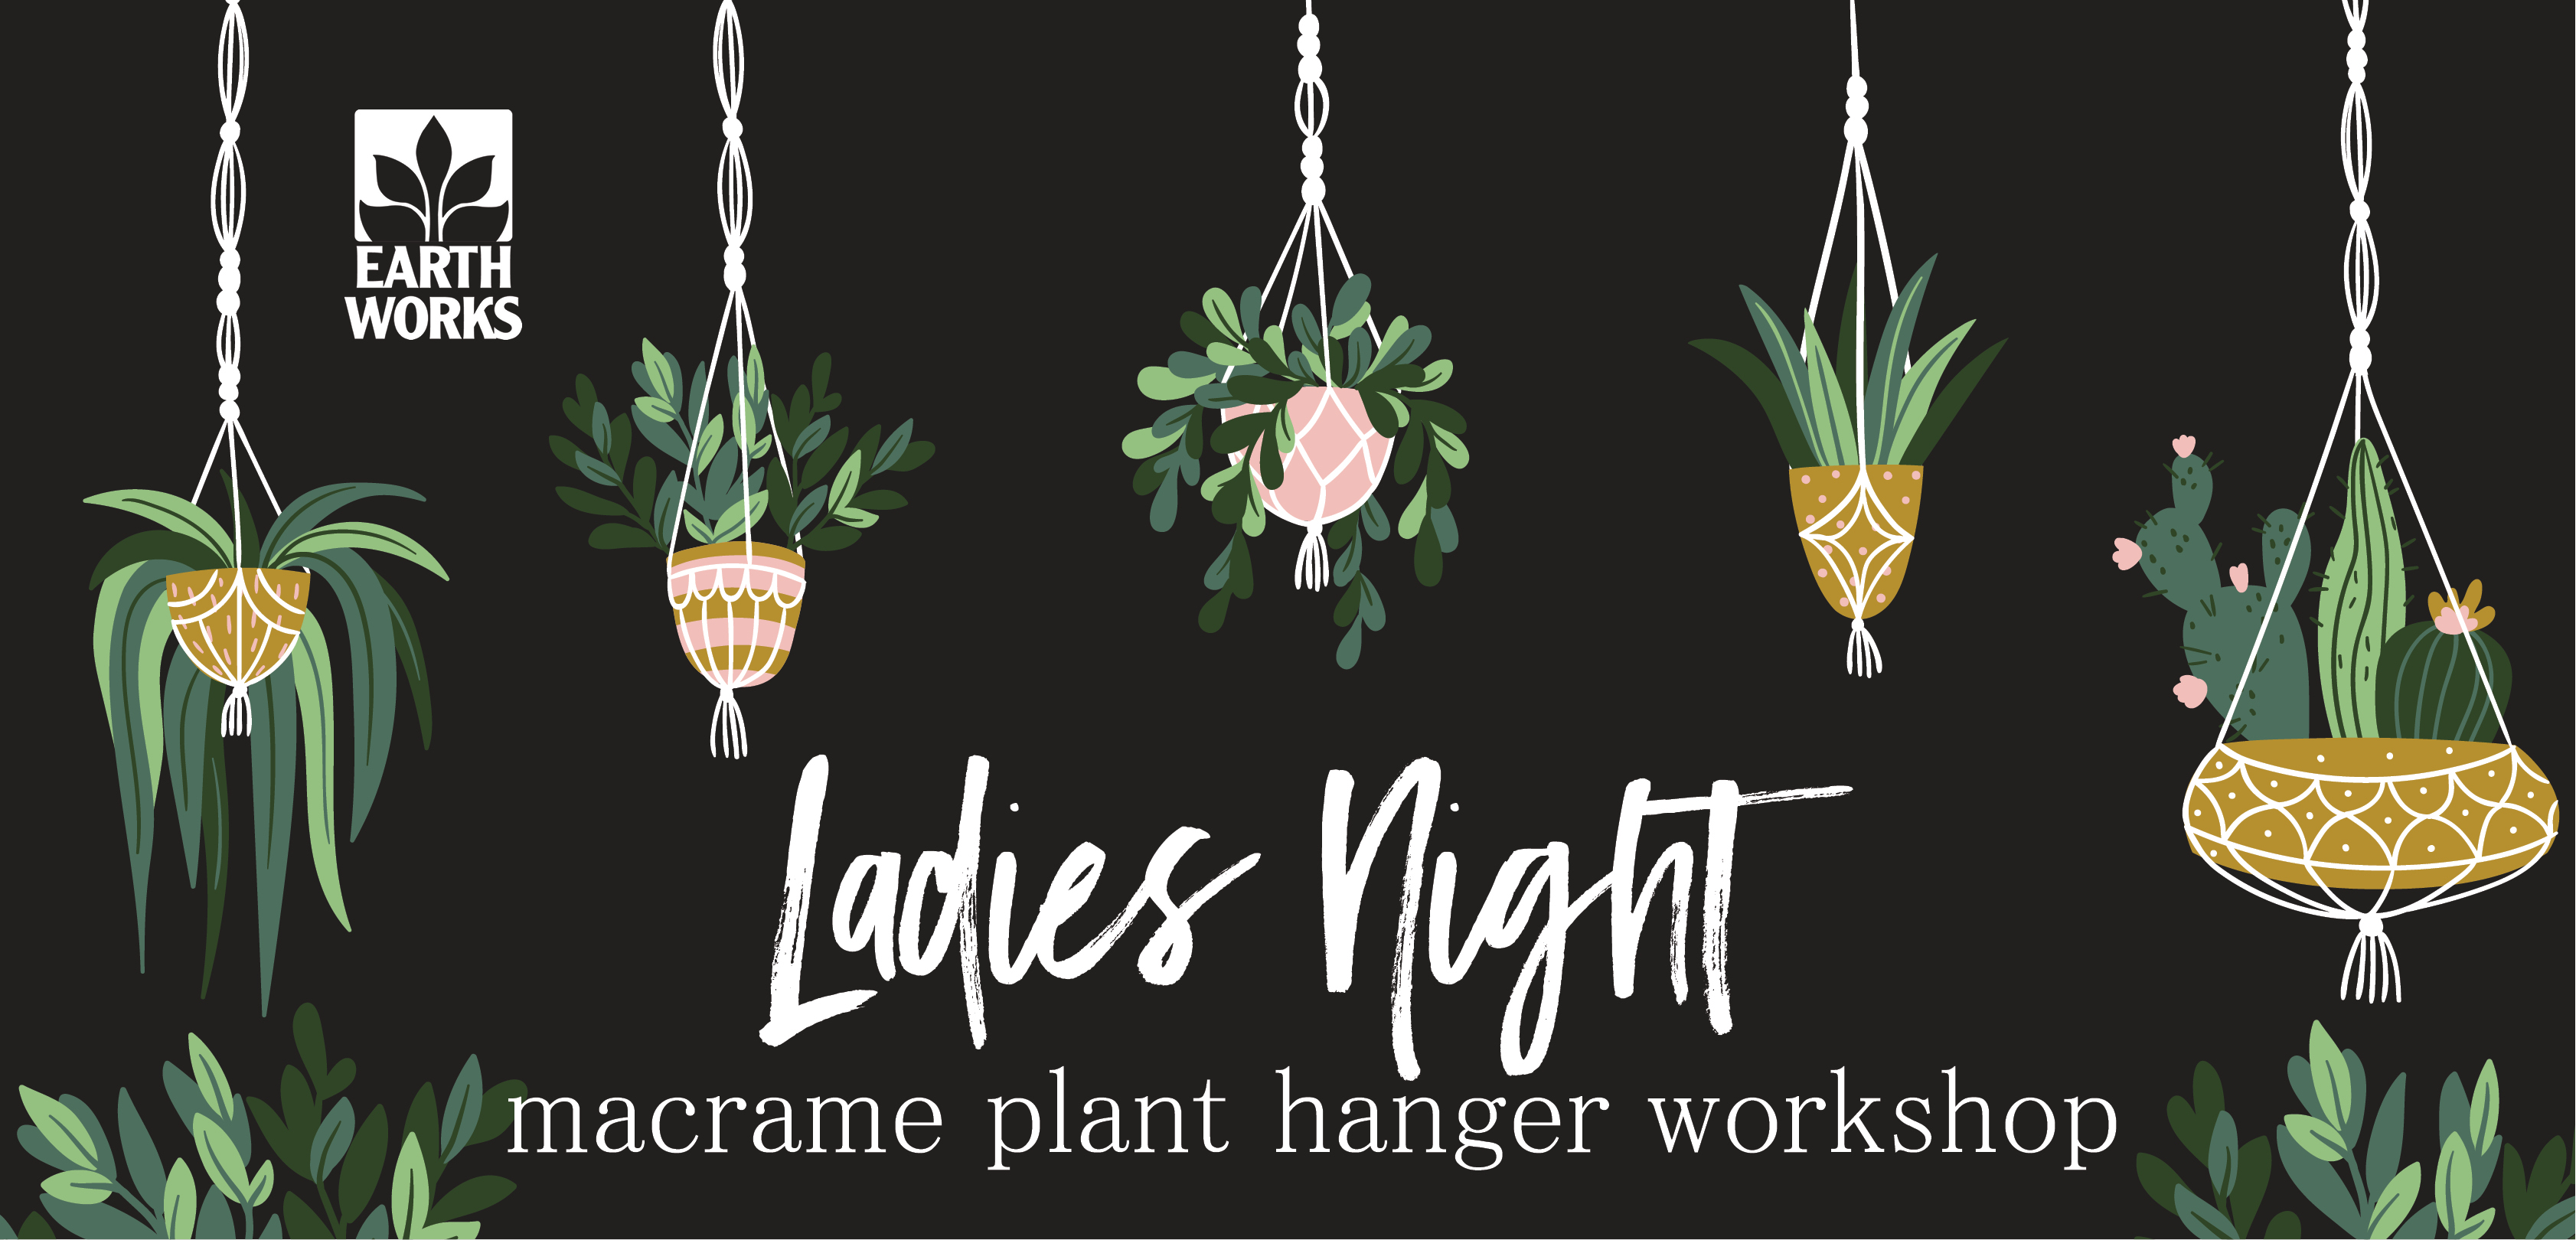 Ladies Night Macrame Plant Hanger Workshop Earthworks